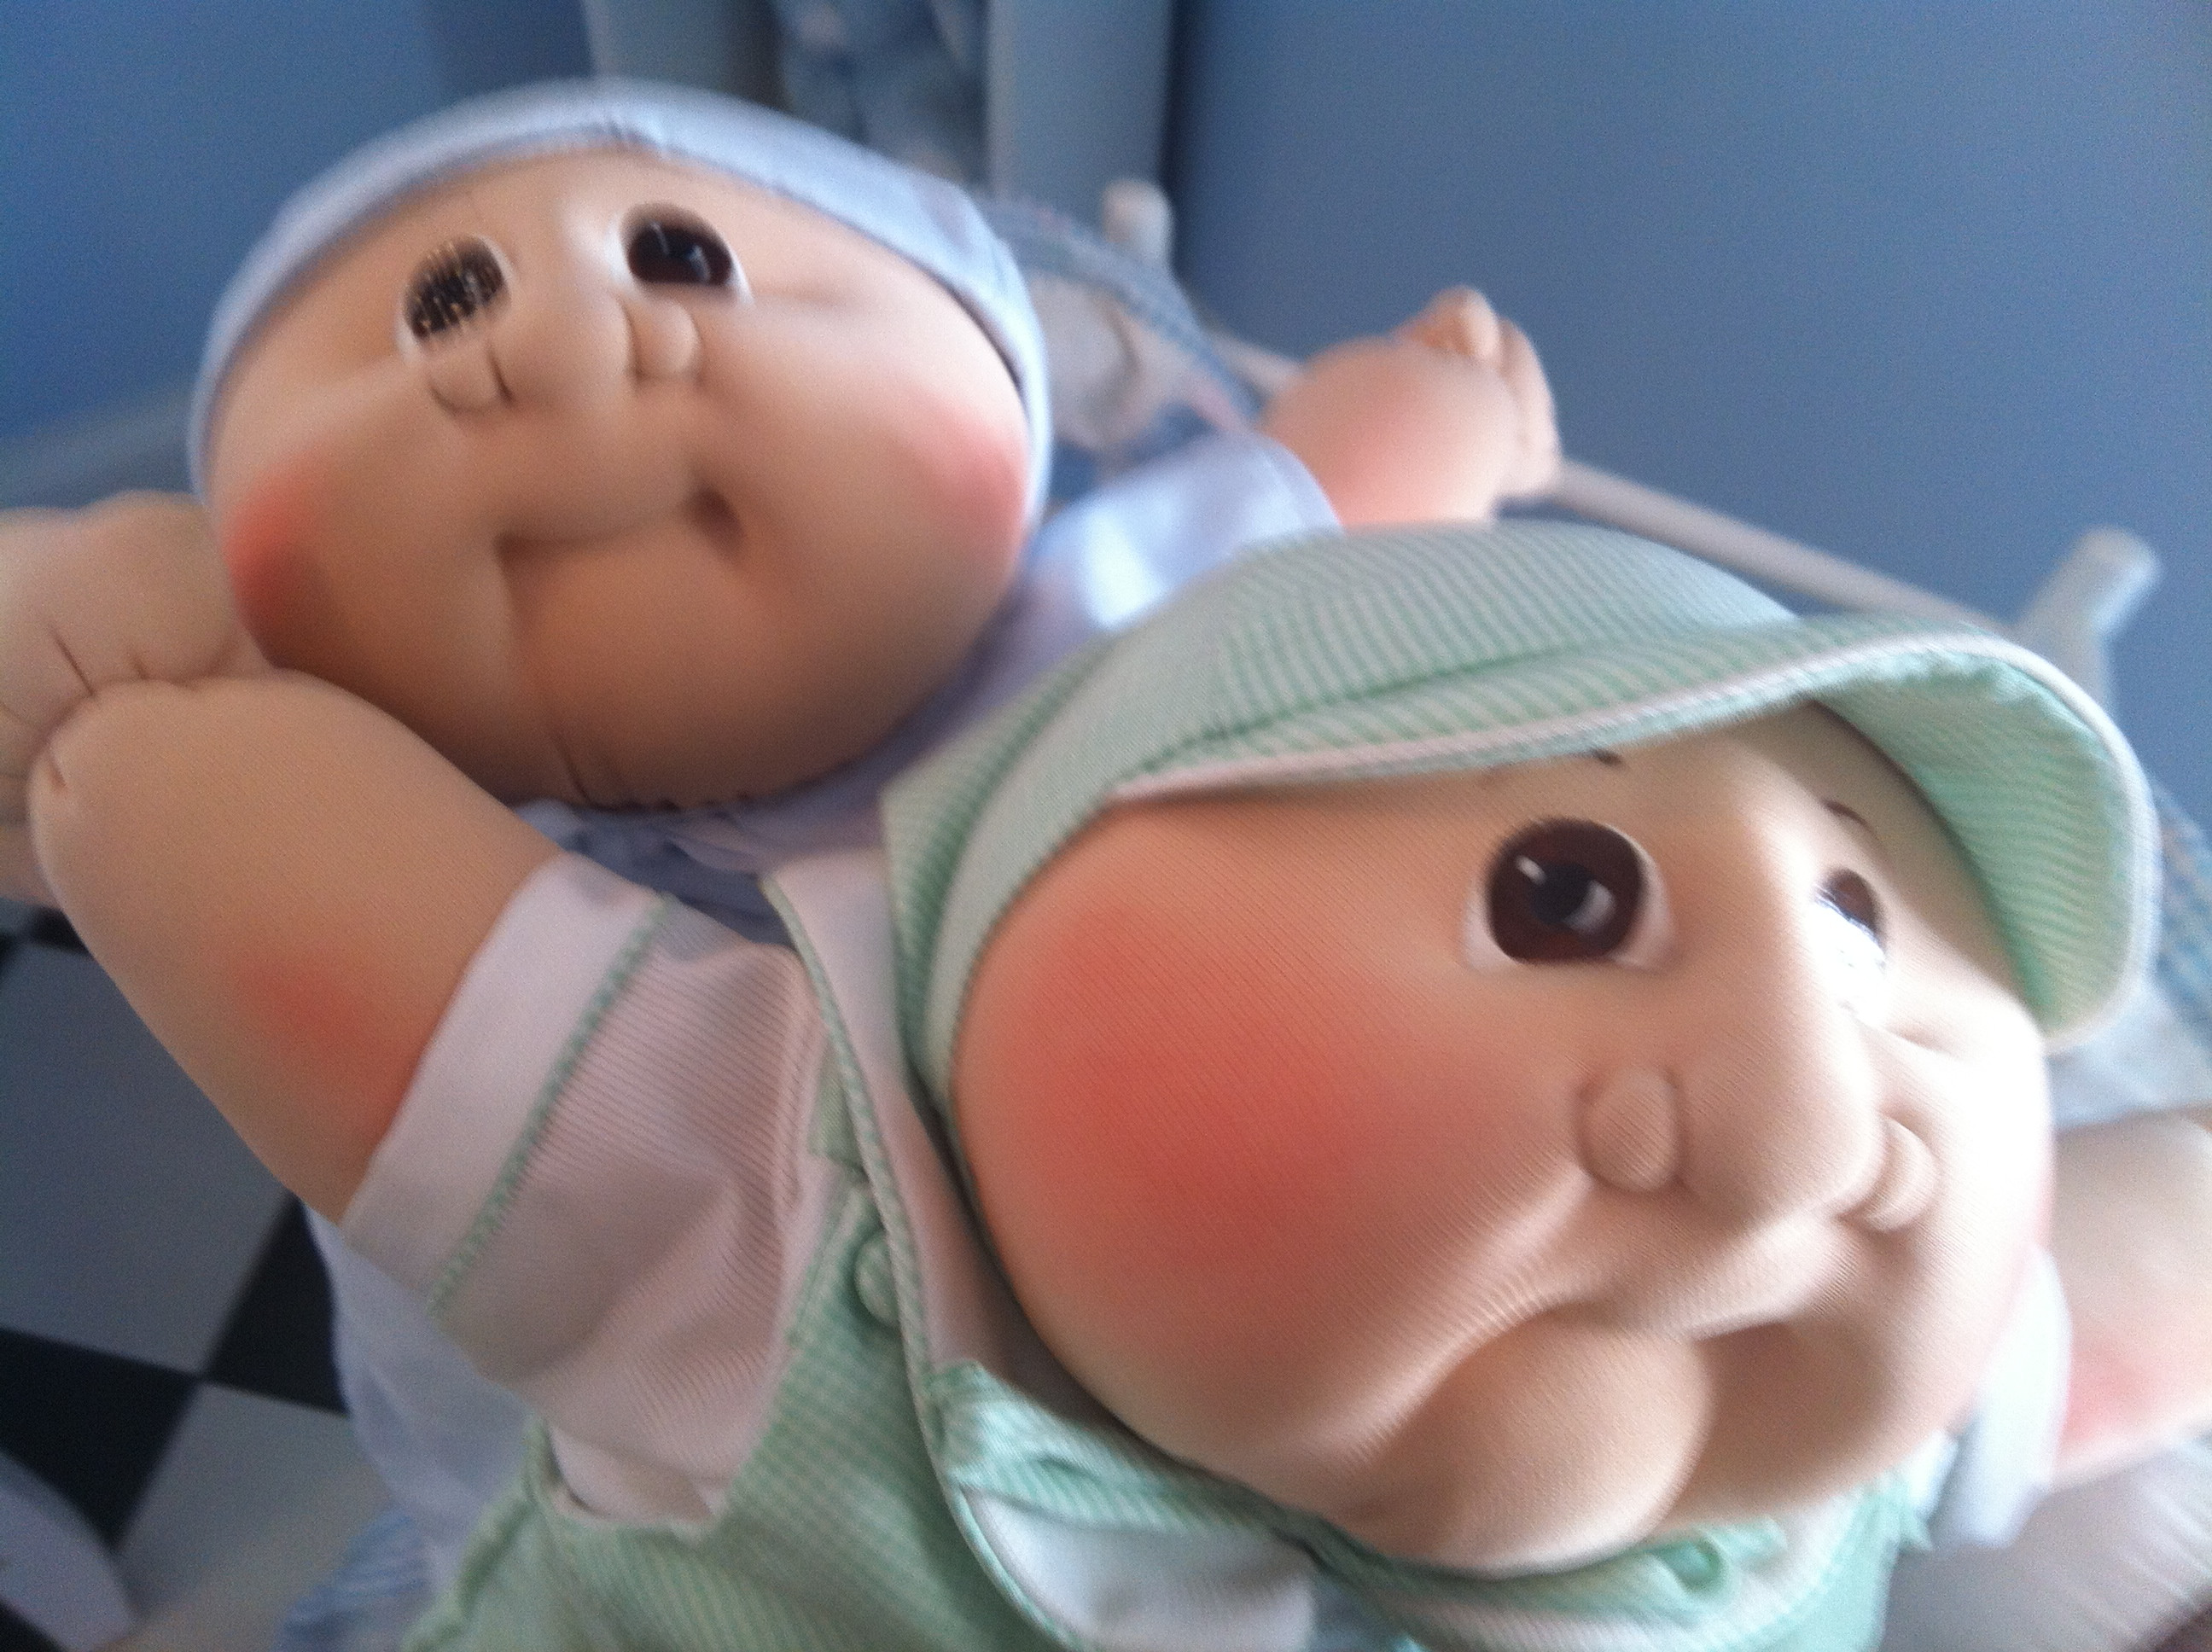 Cabbage Patch Doll Luxury Cabbage Patch Dolls Of Superb 40 Models Cabbage Patch Doll